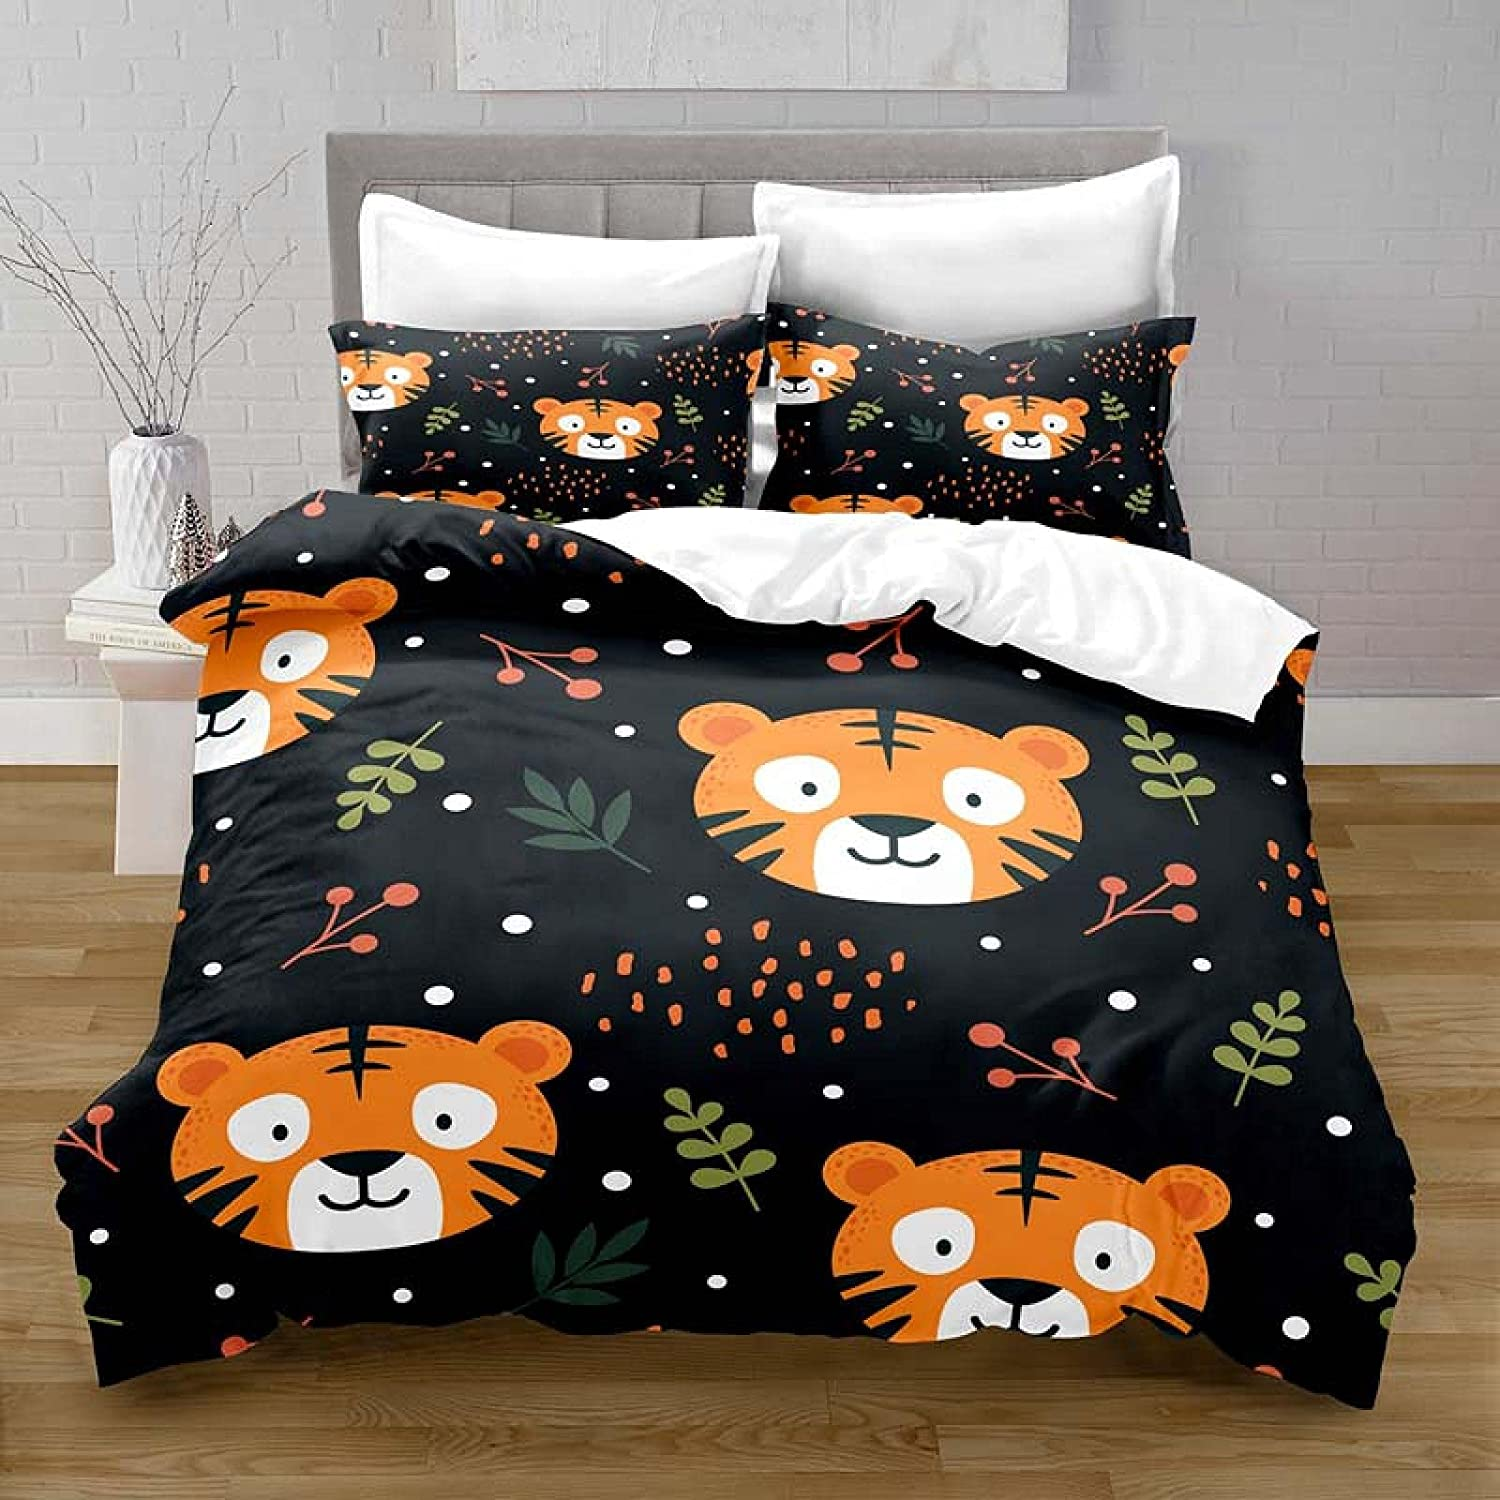 HQHM Duvet Cover King 3 Pieces 1 Green Tiger Cartoon Raleigh Fixed price for sale Mall Leaves Cute